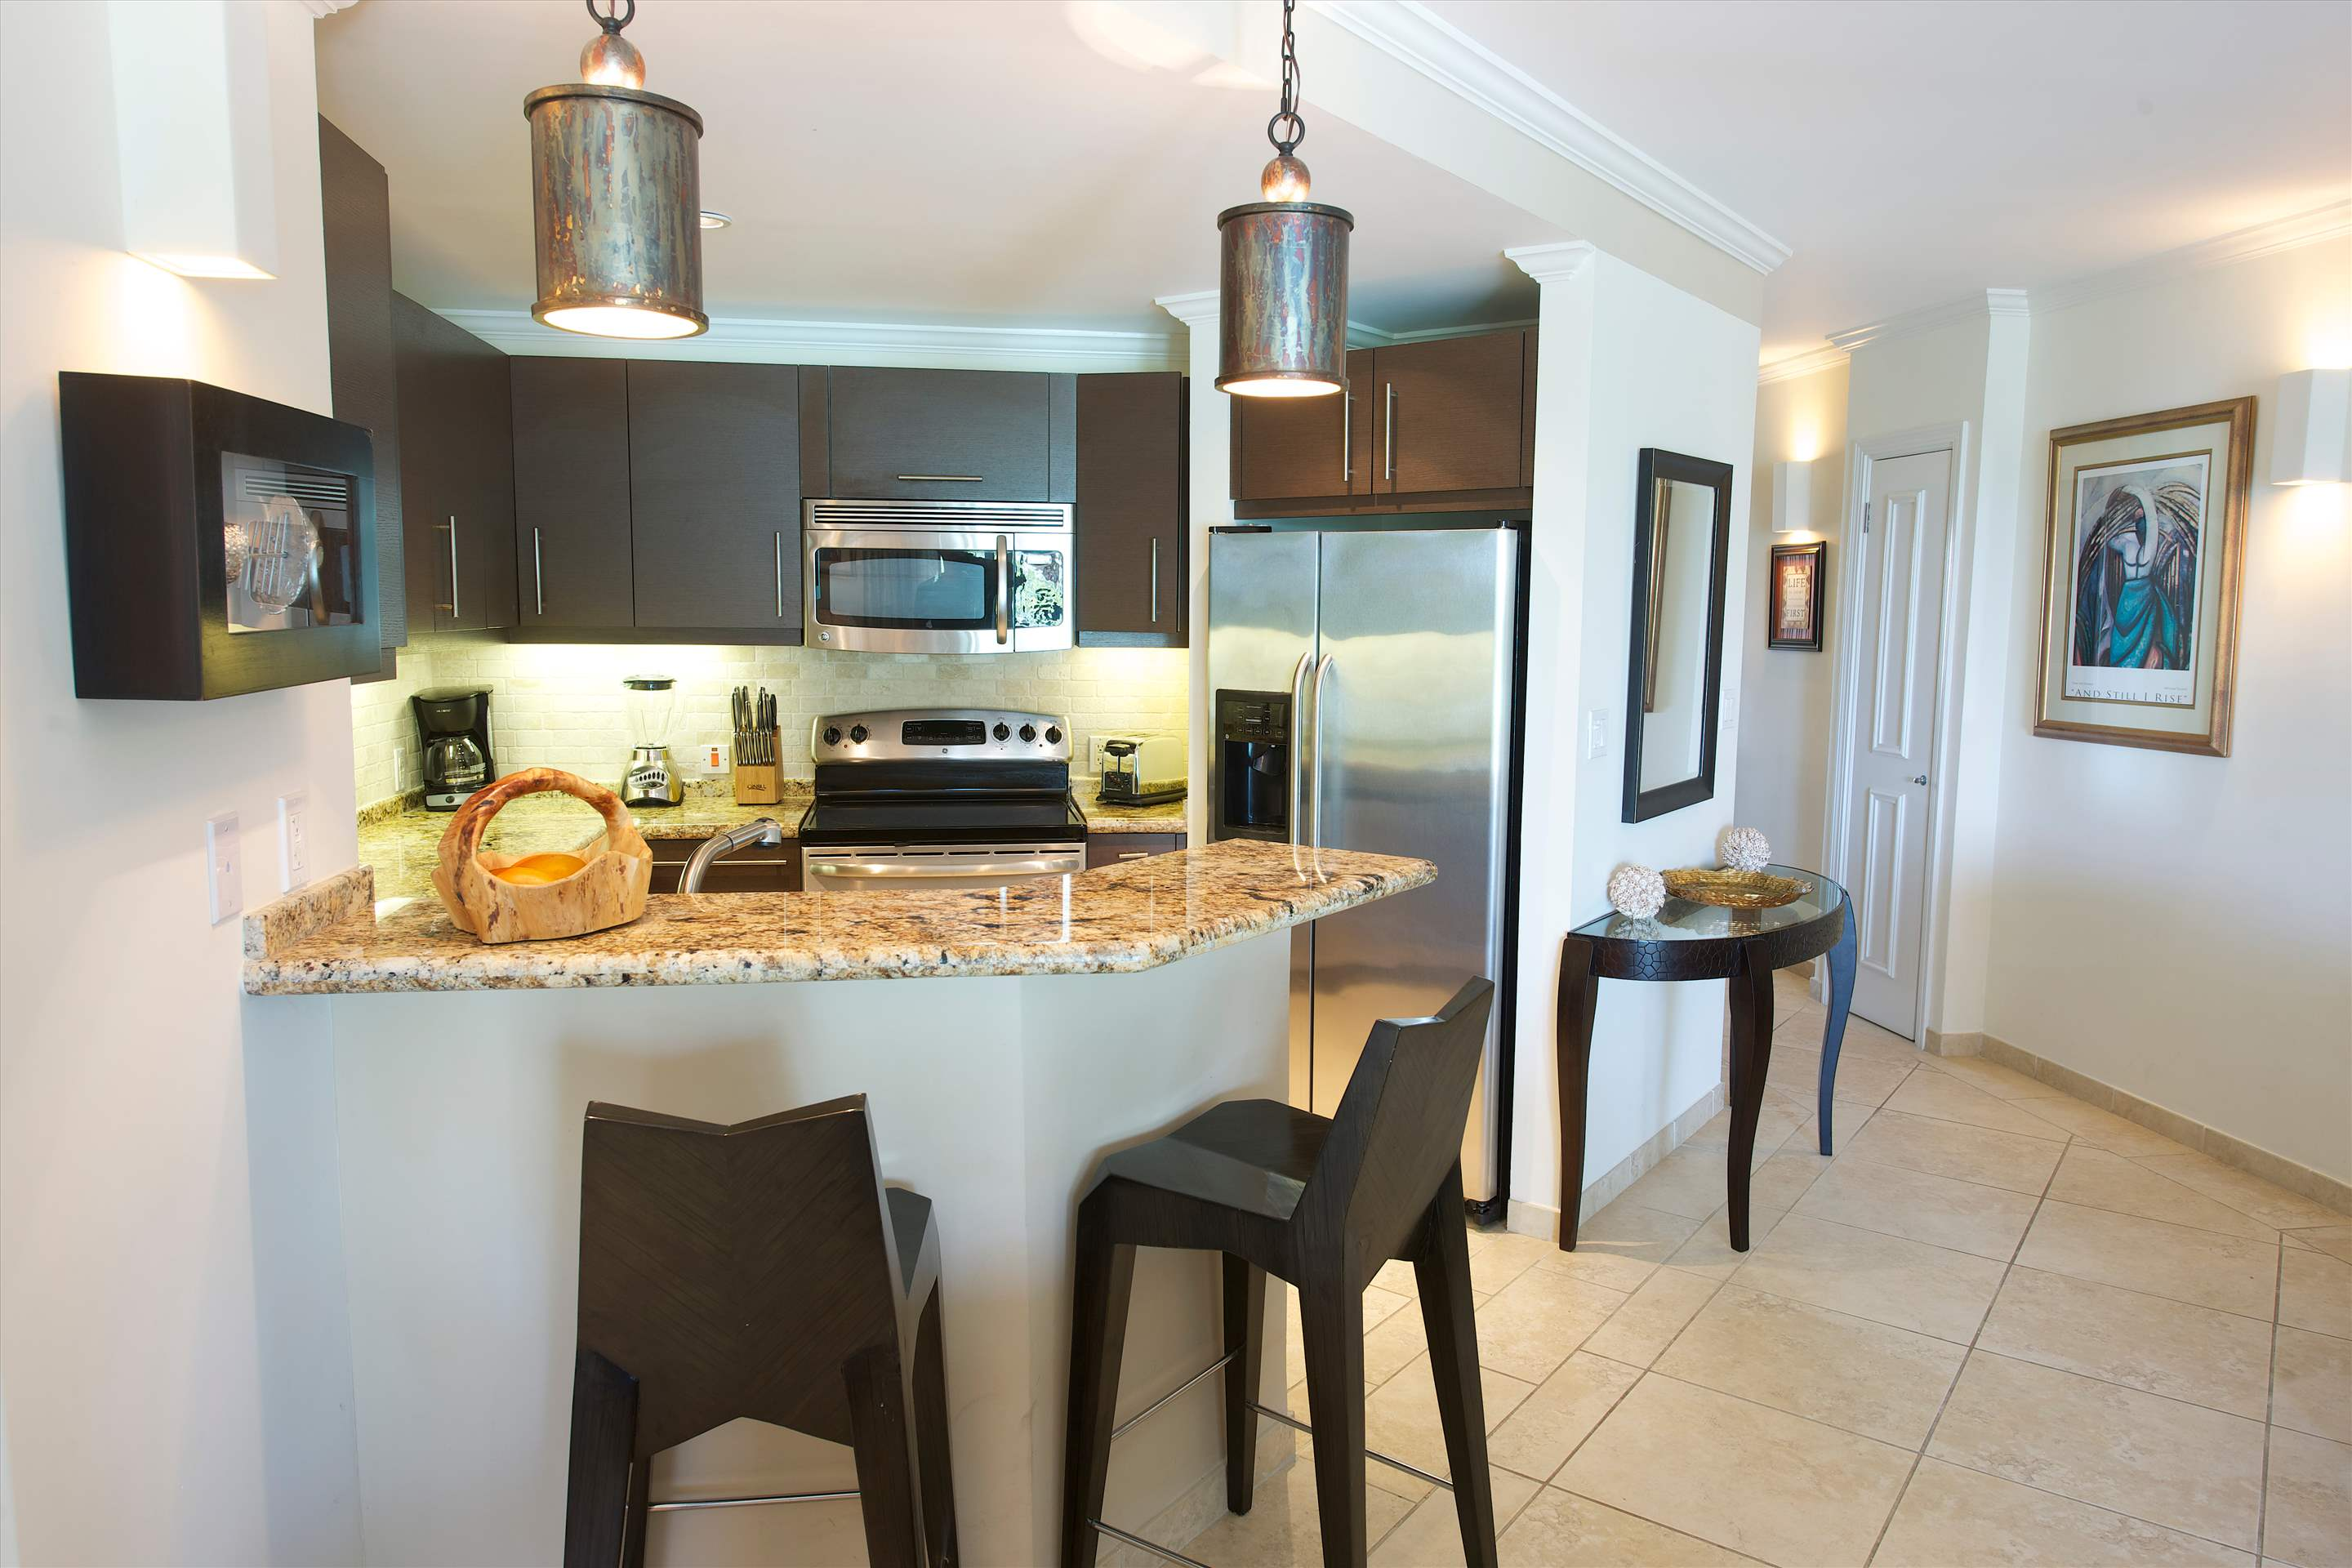 Sapphire Beach 203, 2 bedroom, 3 bedroom apartment in St. Lawrence Gap & South Coast, Barbados Photo #7